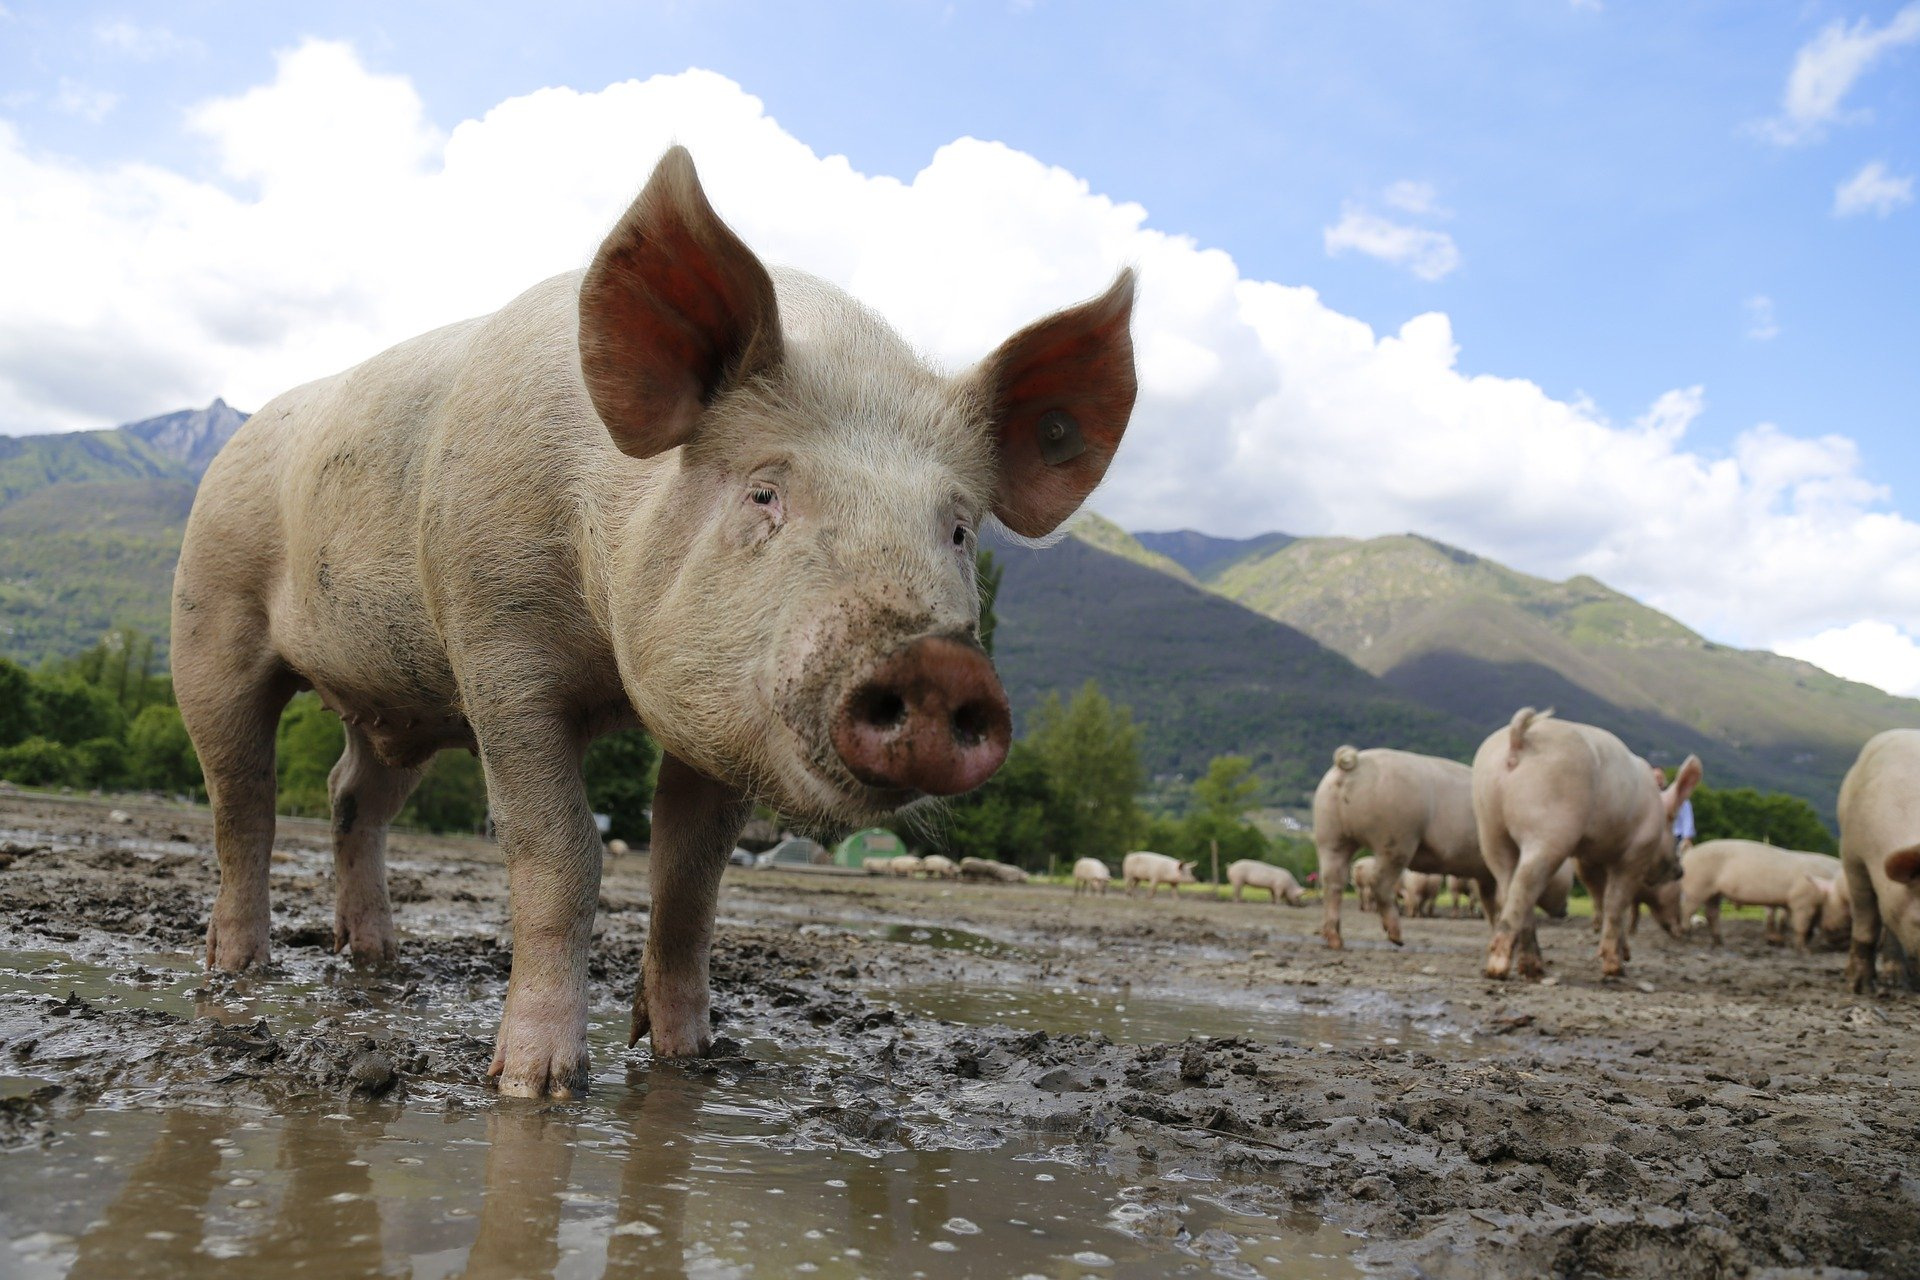 African swine fever outbreak at pig farm with about 10,000 pigs infected in Gansu